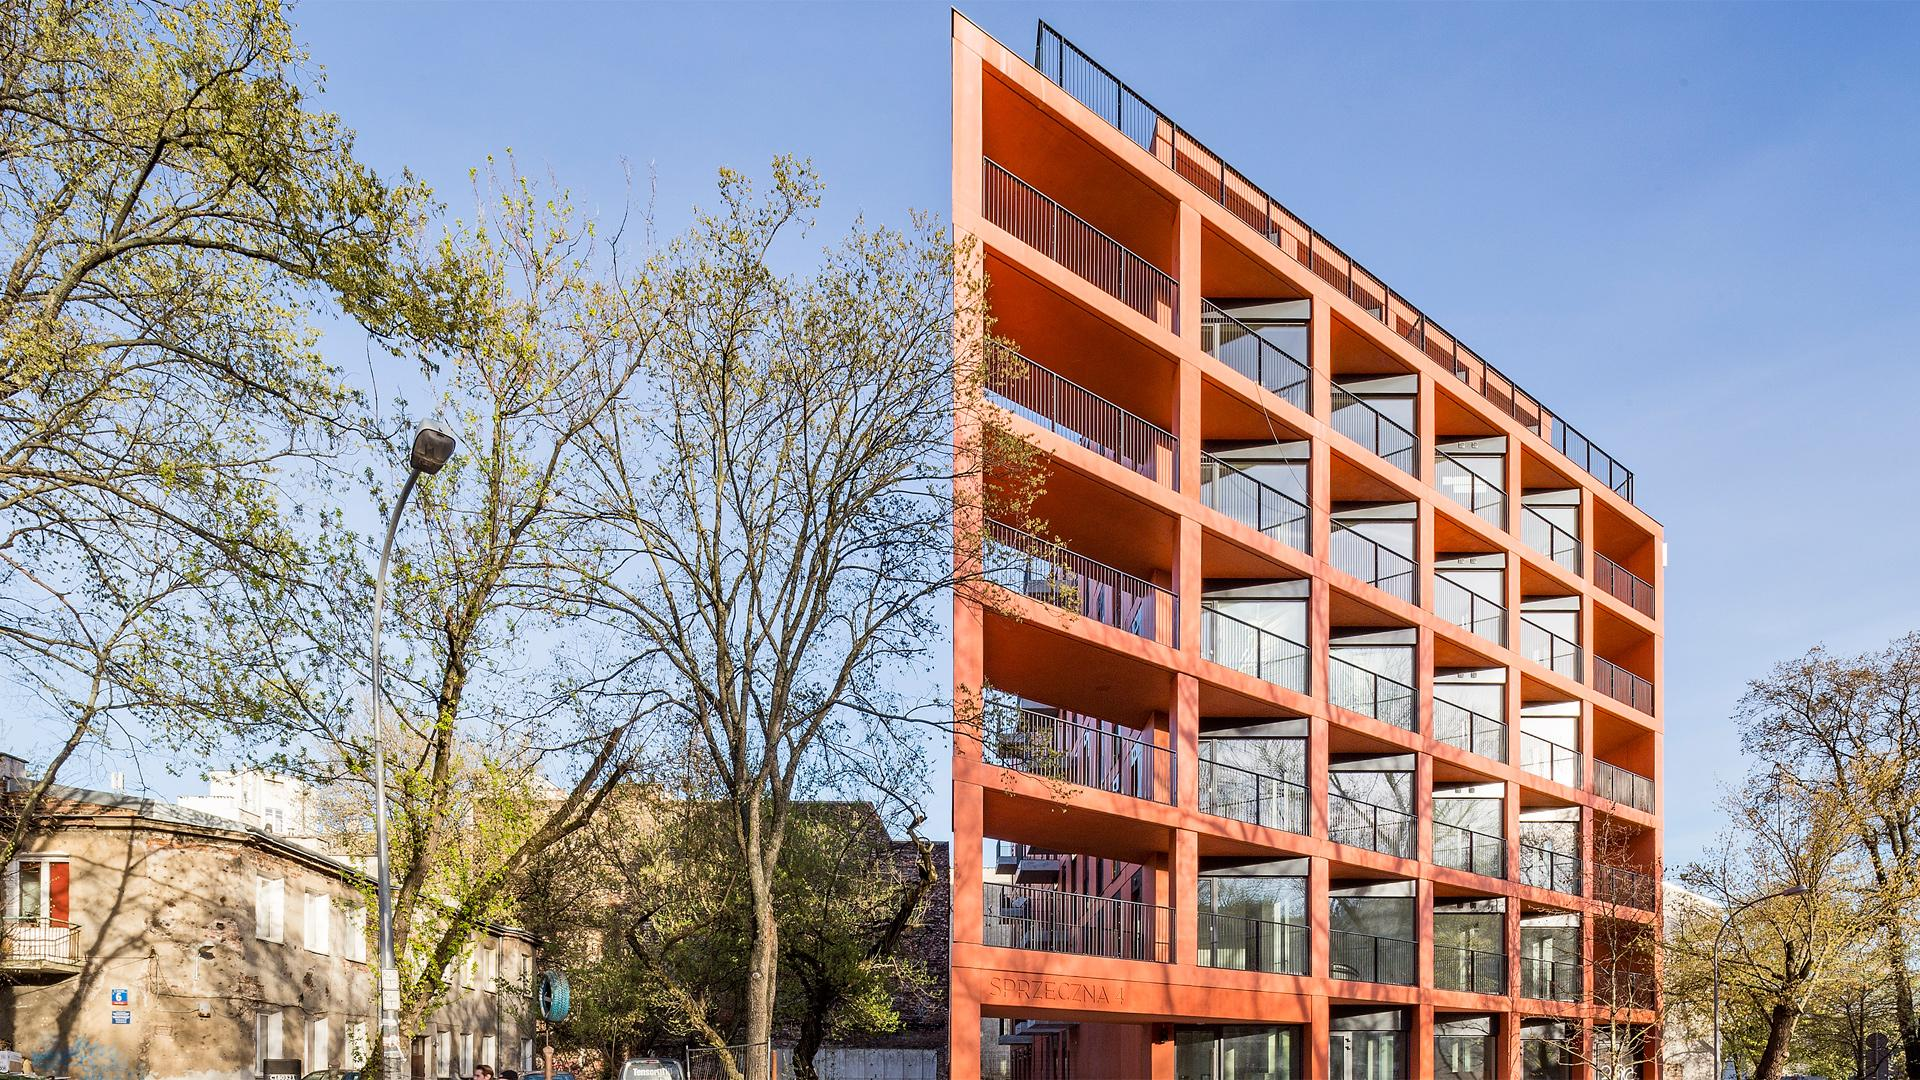 BBGK highlights Polish prefabrication in brick-red concrete - News ...